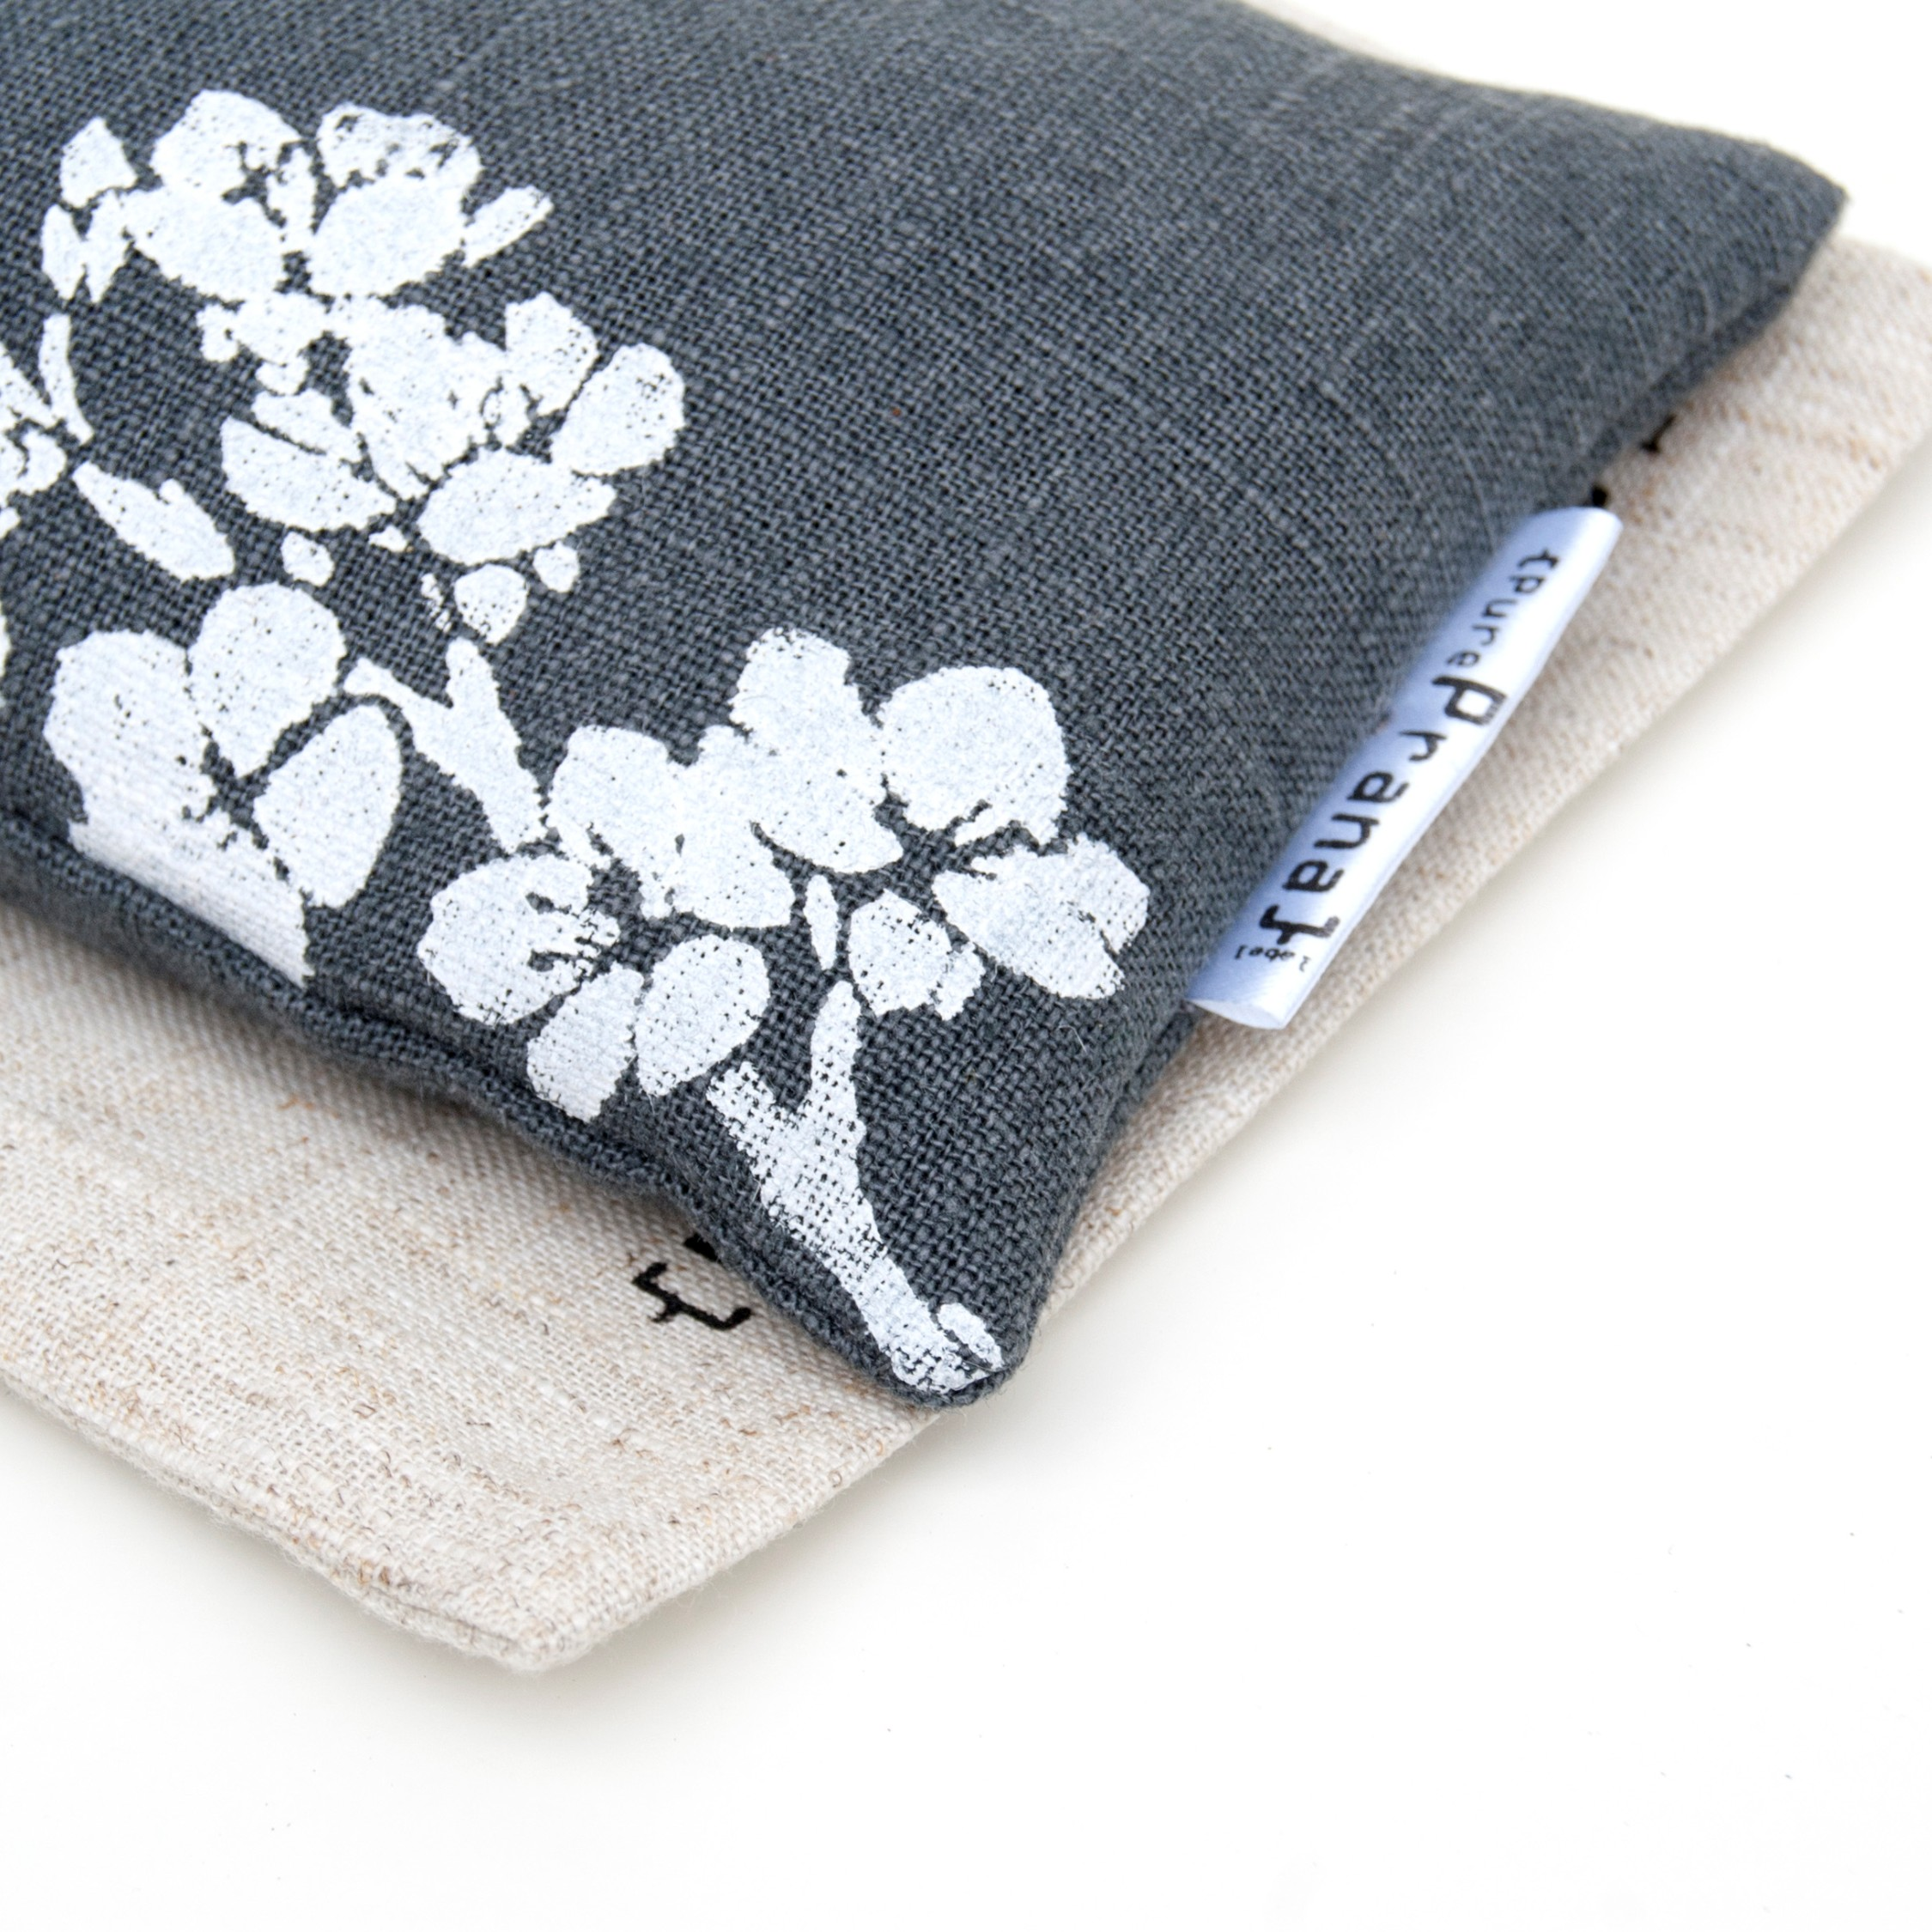 Close up of the Lavender eye pillow Cherry Blossom by Pure Prana Label